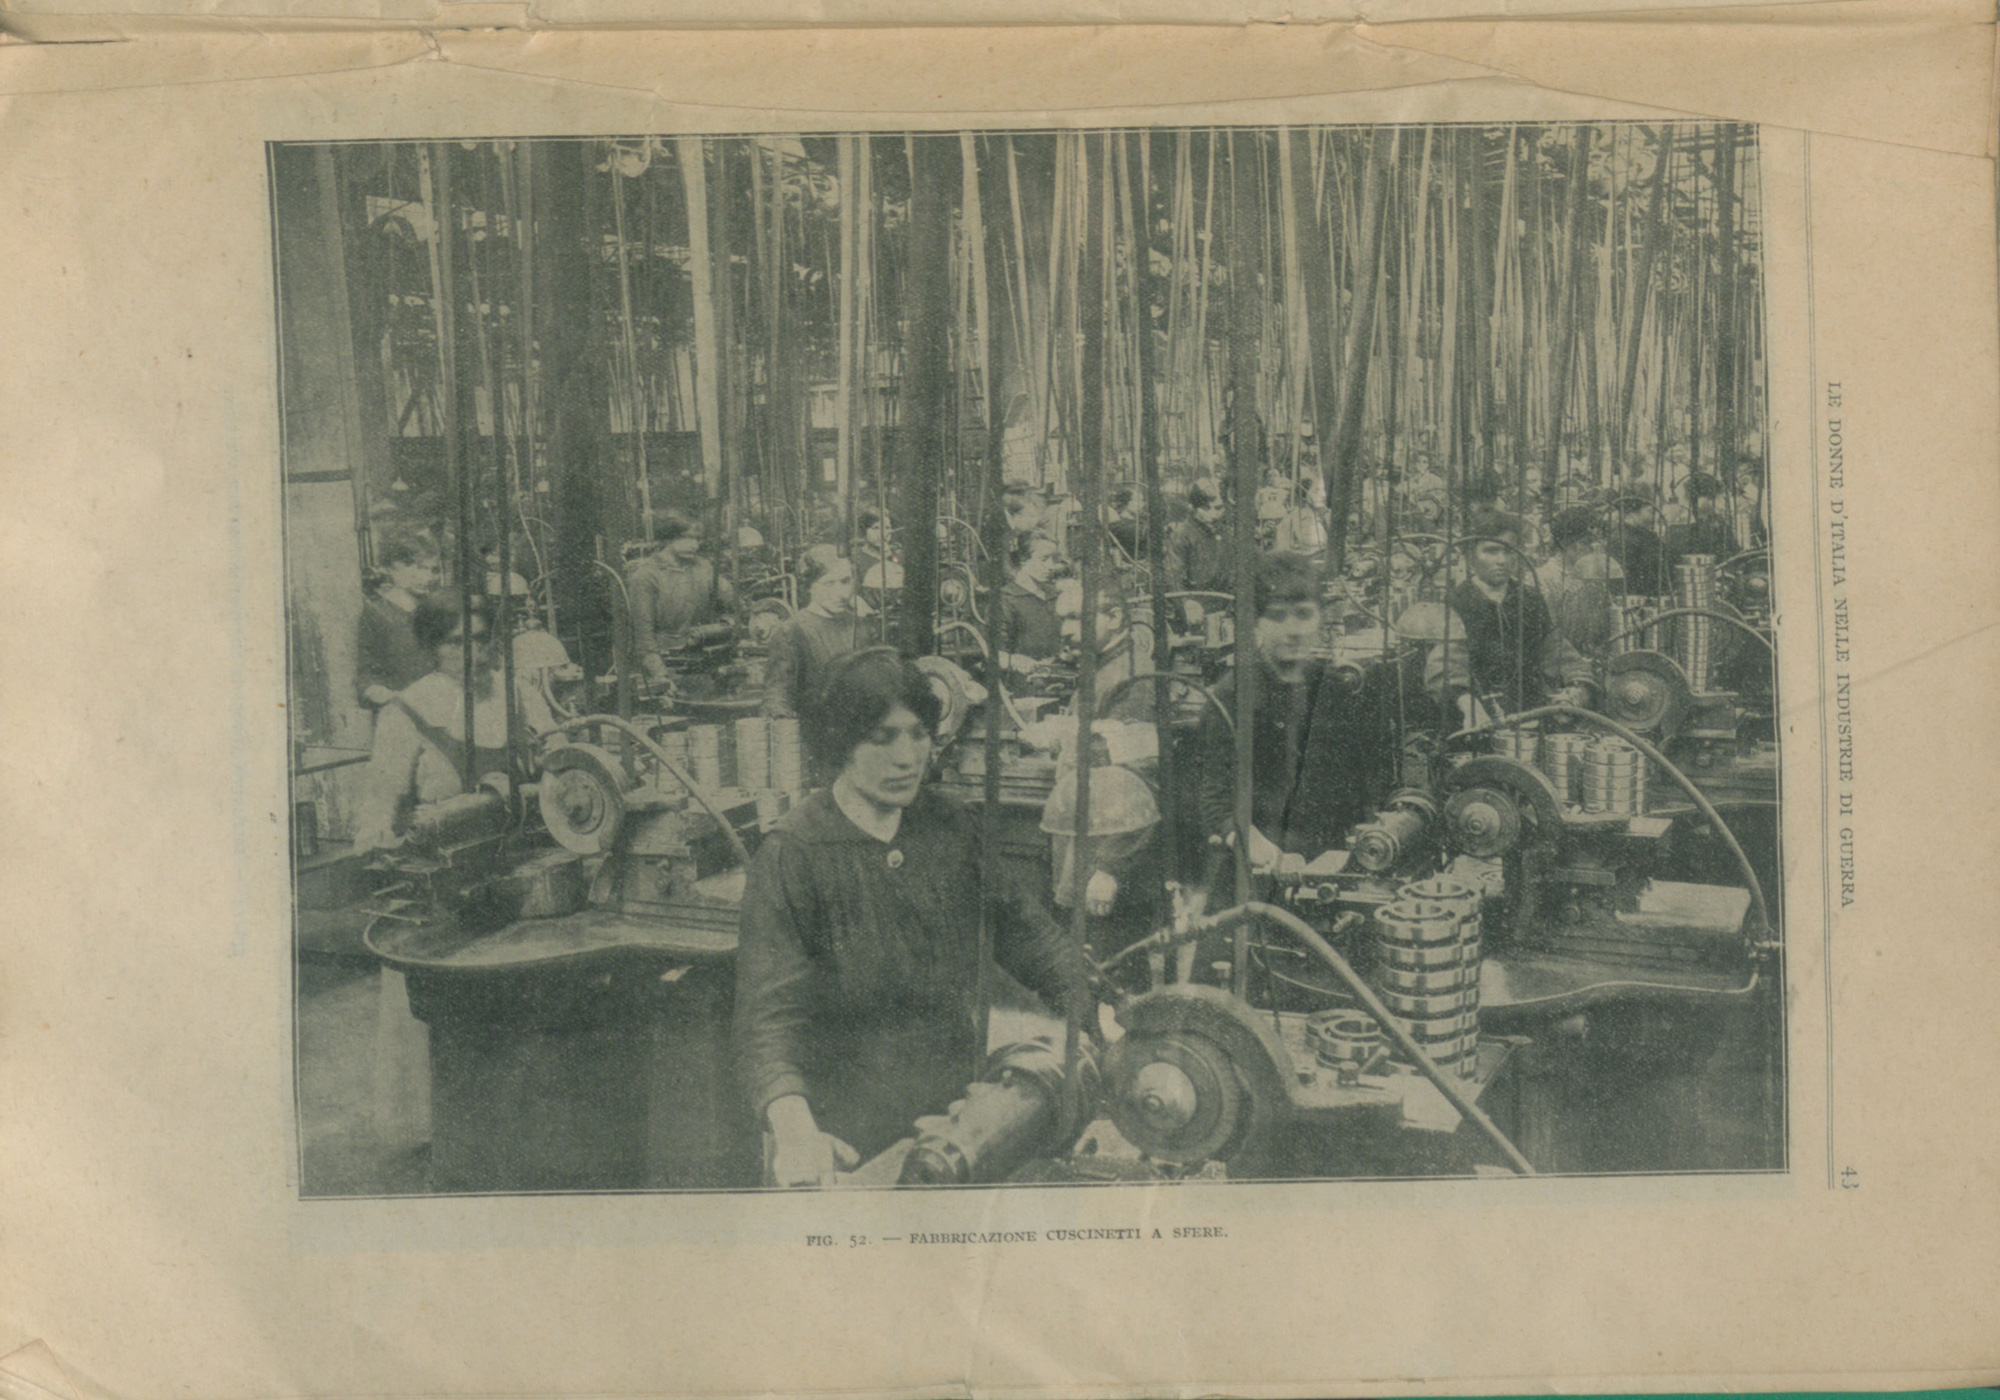 Photograph of women working in a large ball bearings factory in Italy. Published in 'Le Donne d'Italia Nelle Industrie di Guerra' ('The Contribution of Women to the War Industry').